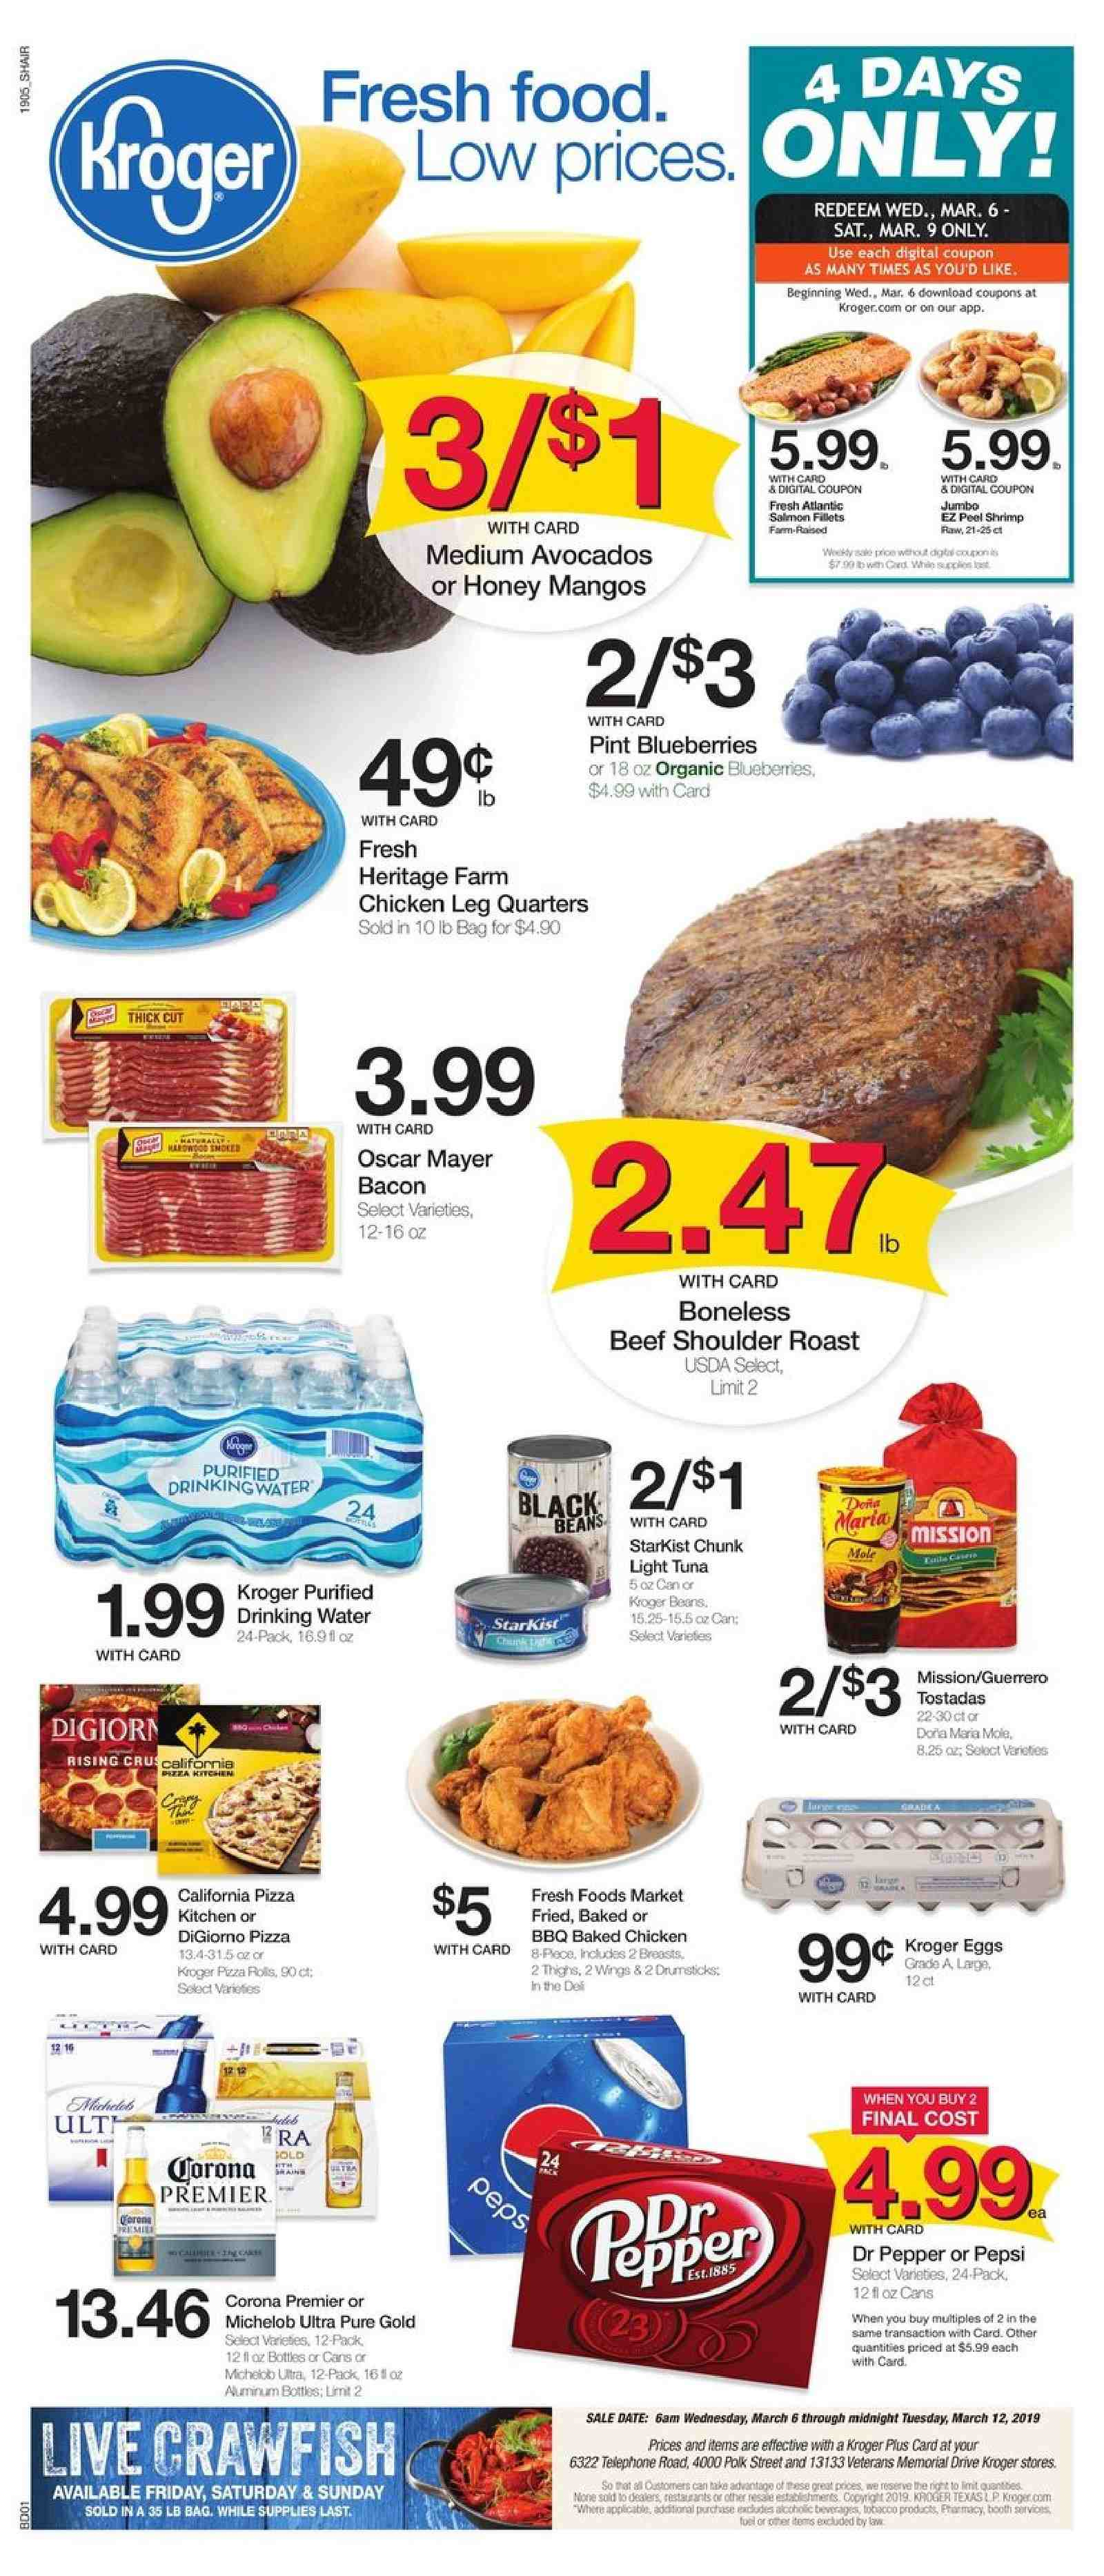 Kroger Flyer - 03.06.2019 - 03.12.2019 - Sales products - Corona, Michelob, avocado, blueberries, mango, pizza rolls, rolls, salmon, tuna, shrimps, pizza, bacon, eggs, beans, crawfish, light tuna, pepper, honey, Pepsi, Dr. Pepper, water, chicken, beef meat, fuel. Page 1.